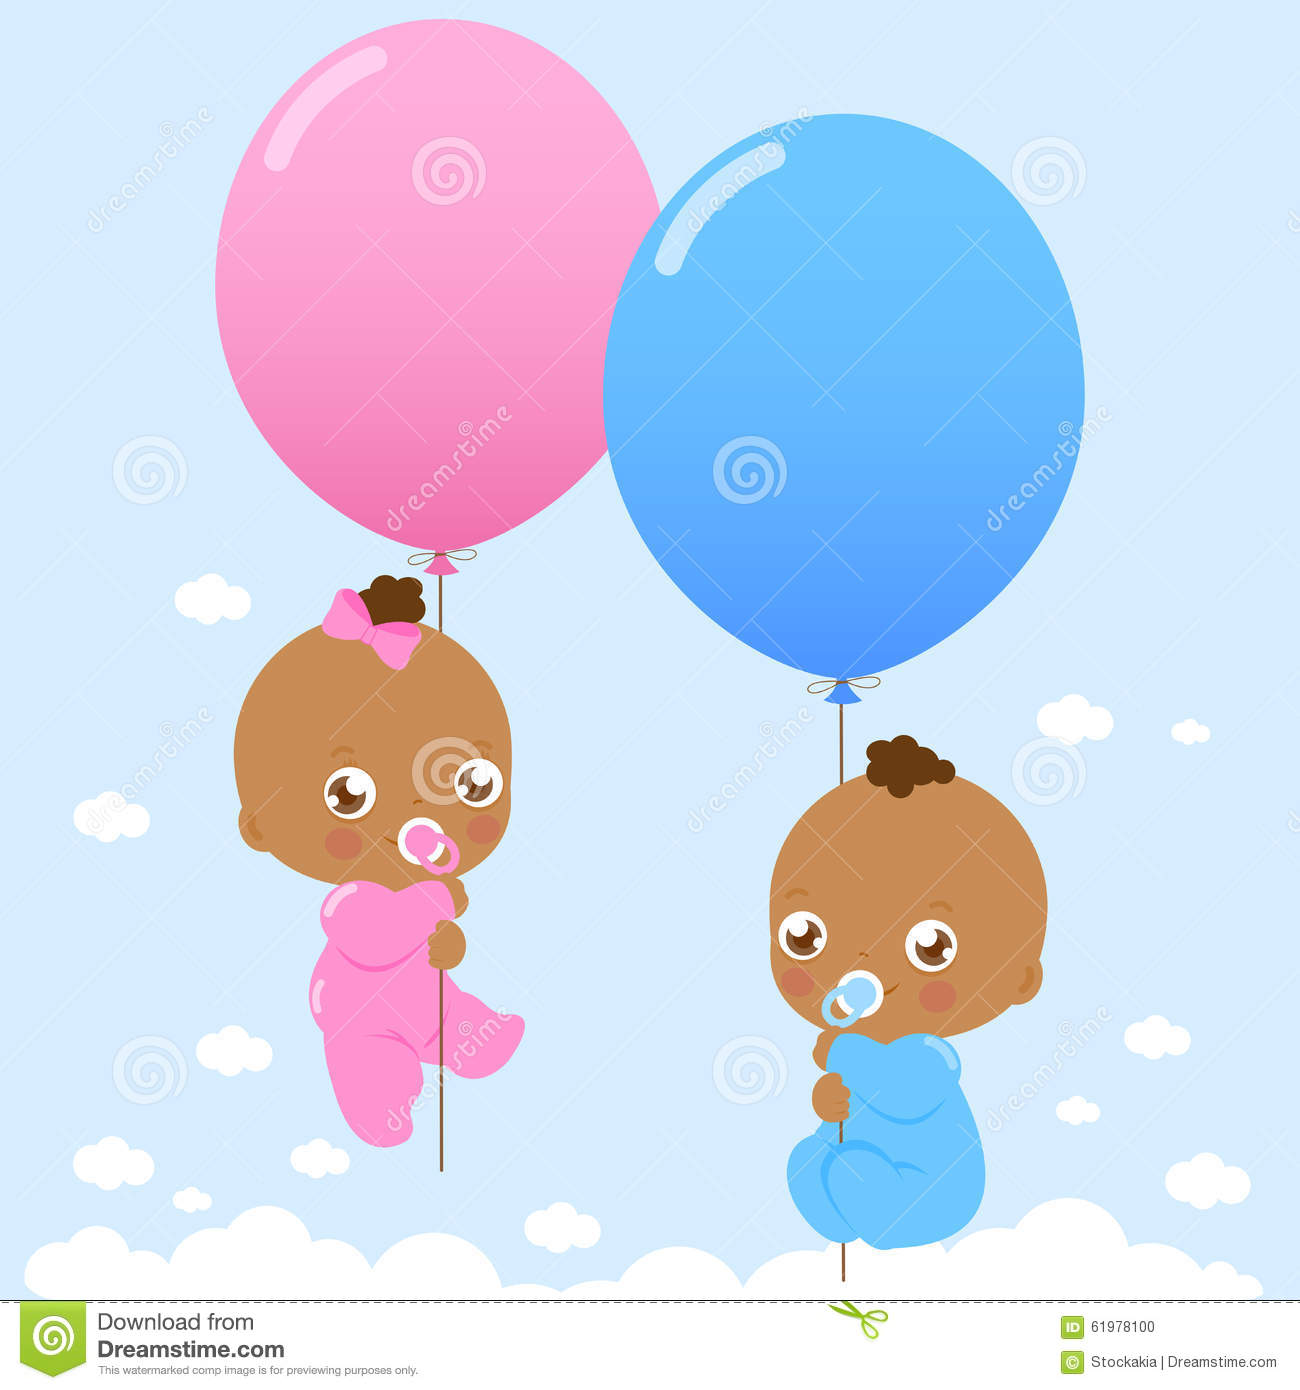 Vector illustration of cute newborn twin girl and boy black babies flying in the sky holding balloons